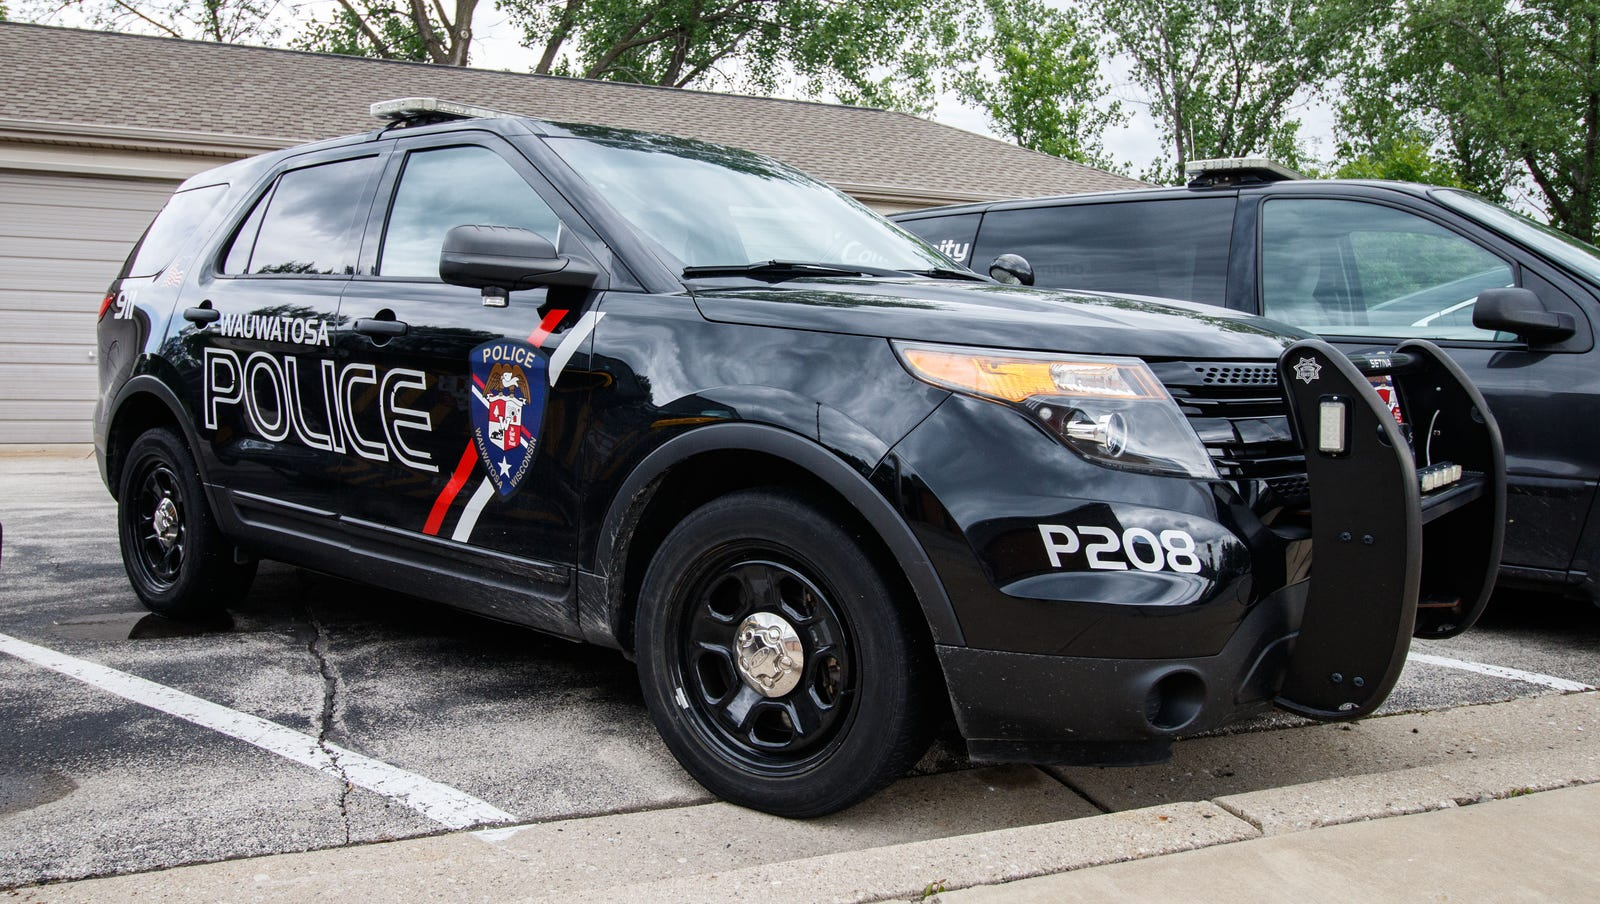 Man made advances to underage teen, punched mall employee and spat on Tosa police officers, complaint says